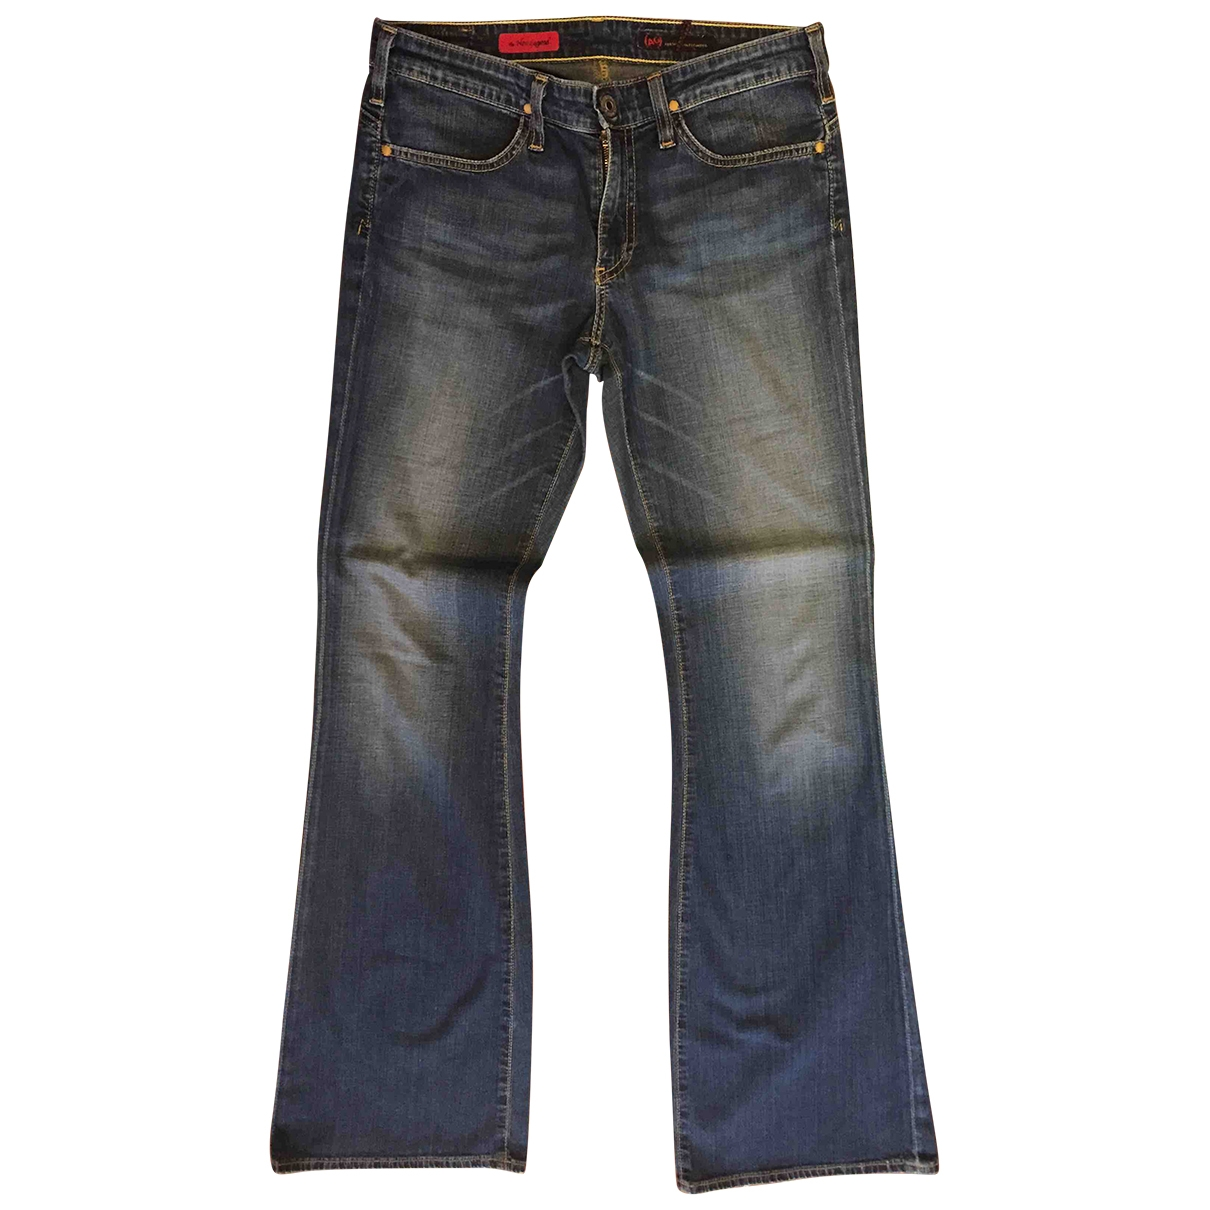 Adriano Goldschmied \N Blue Cotton - elasthane Jeans for Women 28 US